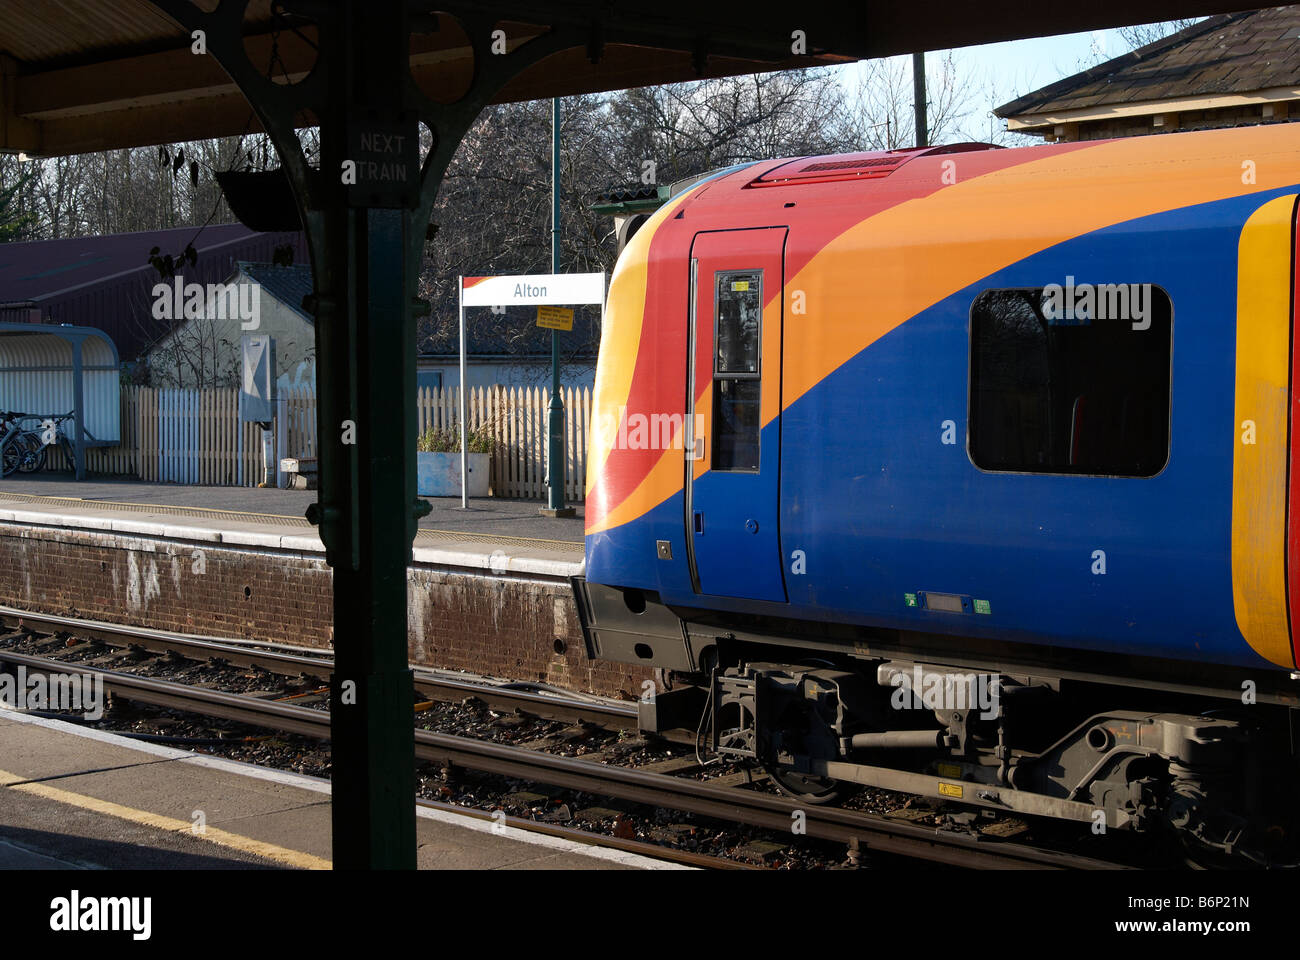 450 class electric multiple unit in South West Trains livery standing at Alton Station, Alton, Hampshire, England. - Stock Image